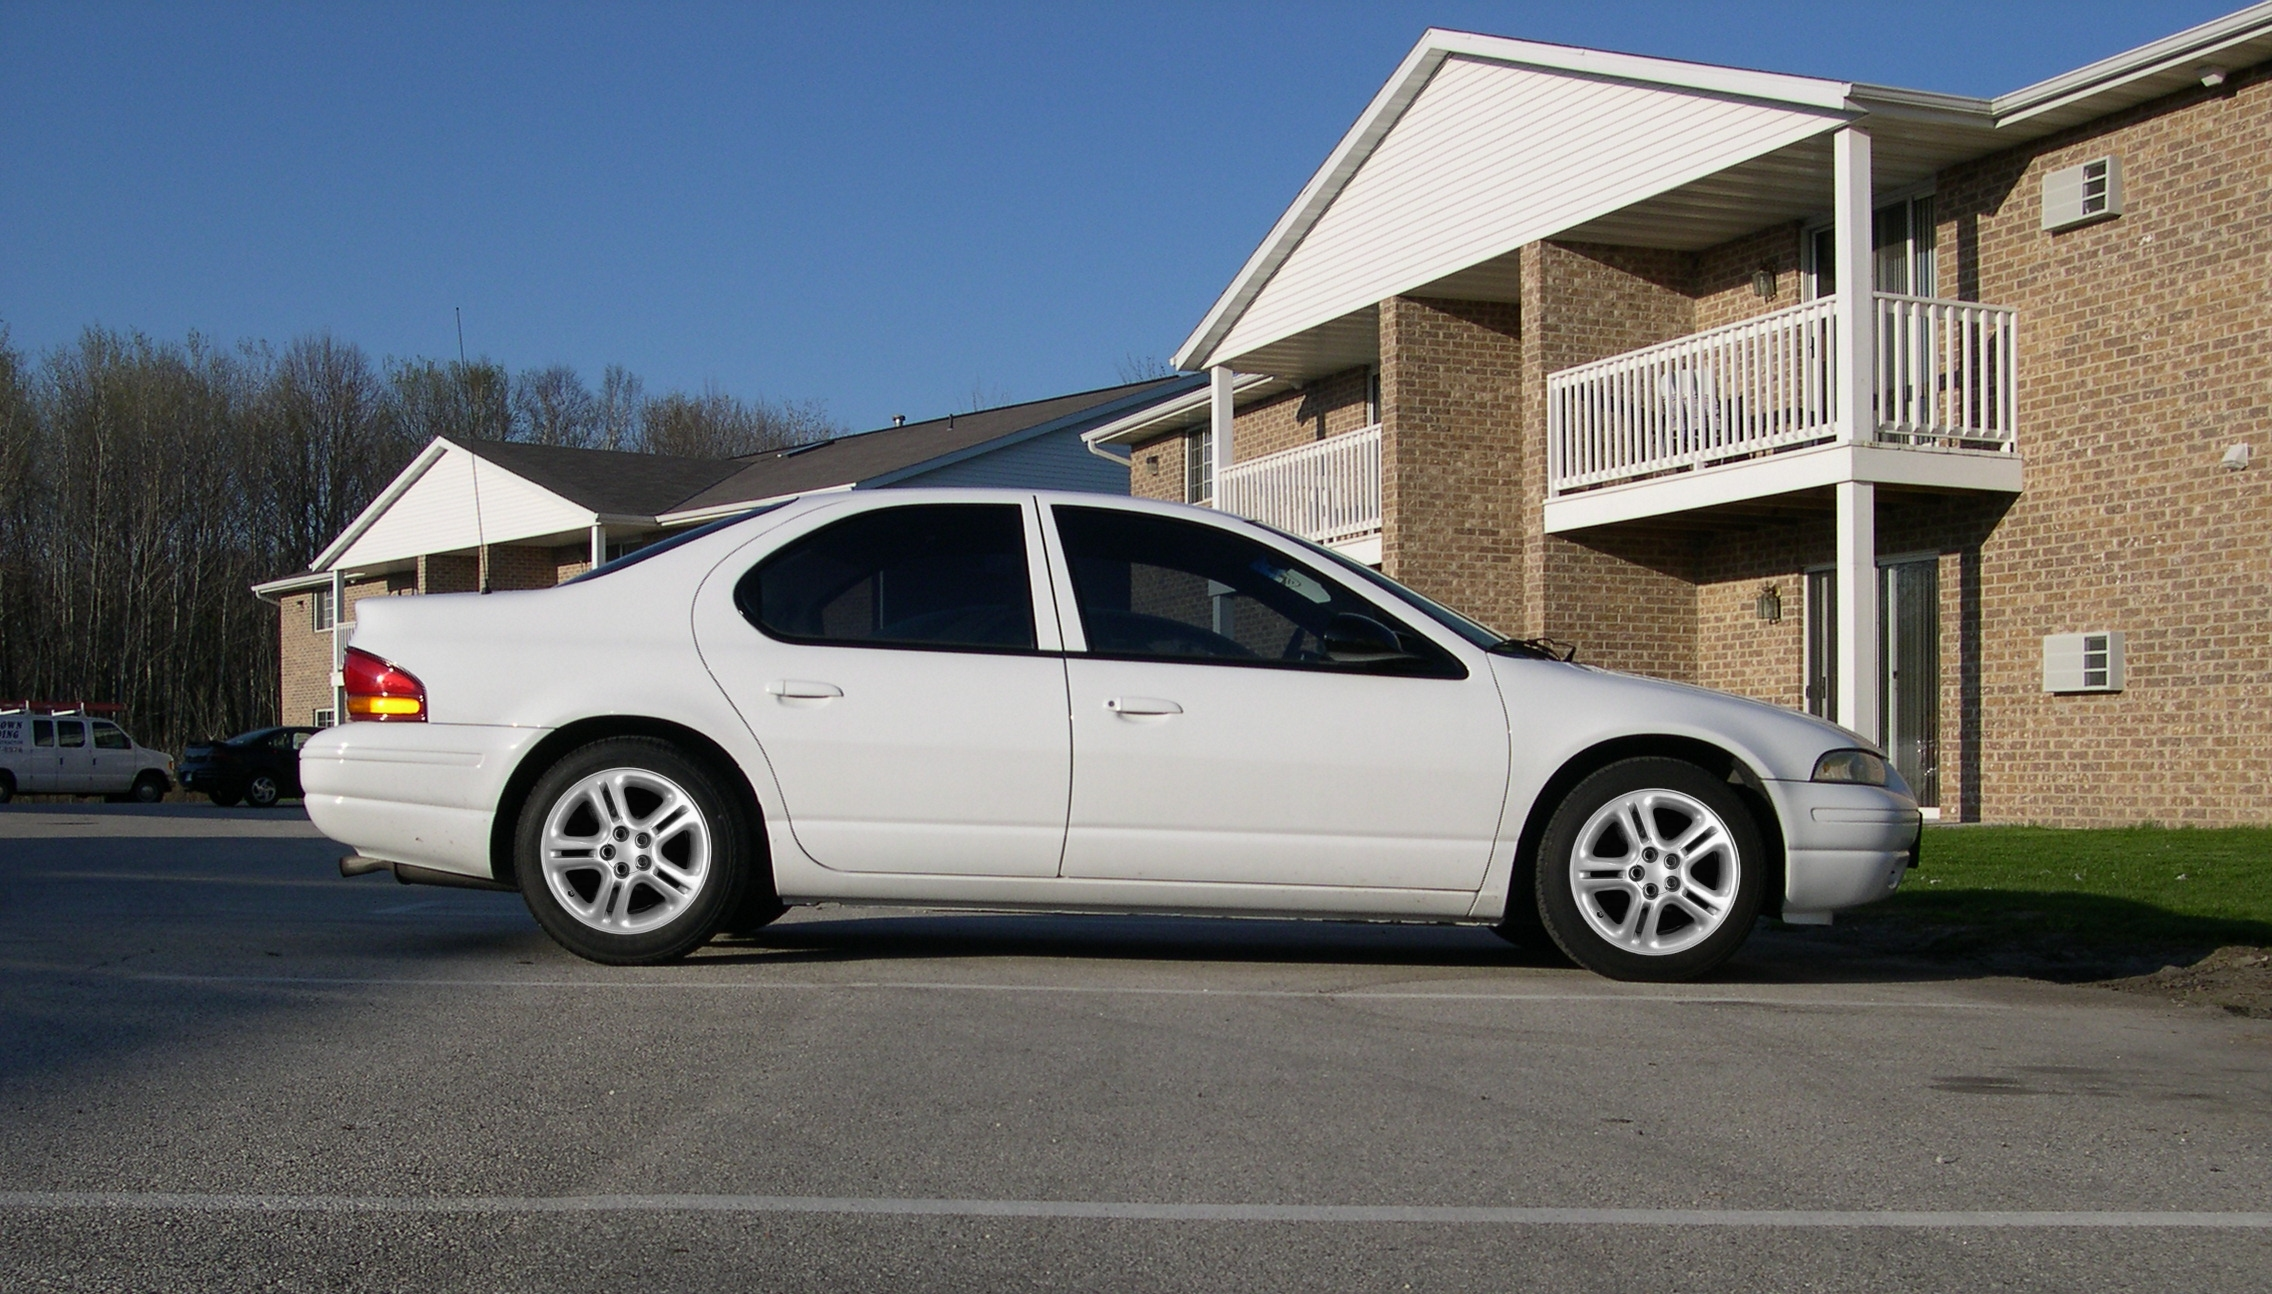 97 Stratus Wheels White 1g Sebring 16x6 5 Split Spoke